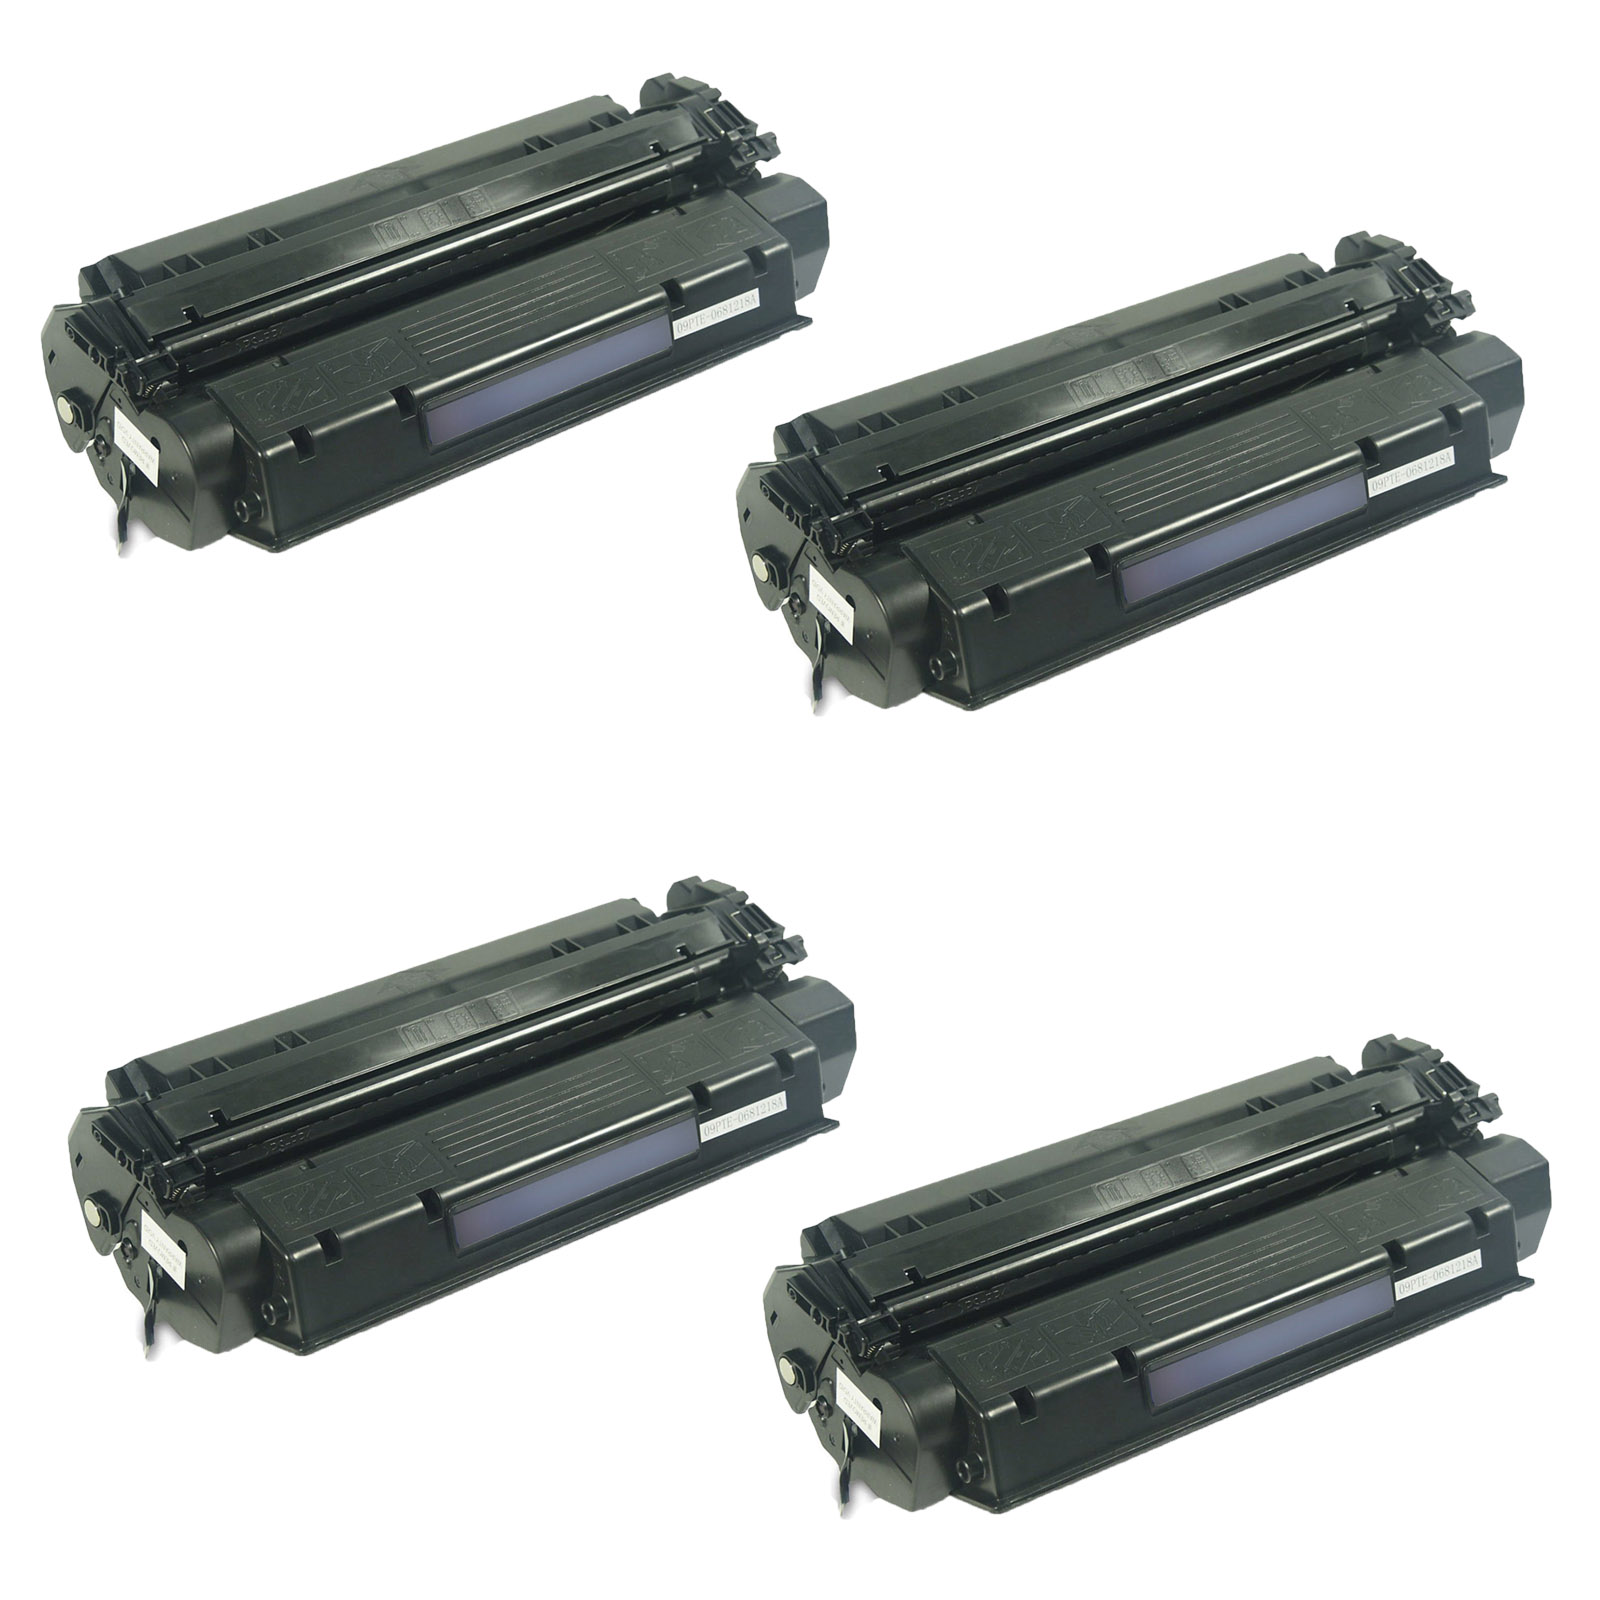 4PK Compatible C7115X HY Black Toner Cartridge for HP LaserJet 1200 1200n 12